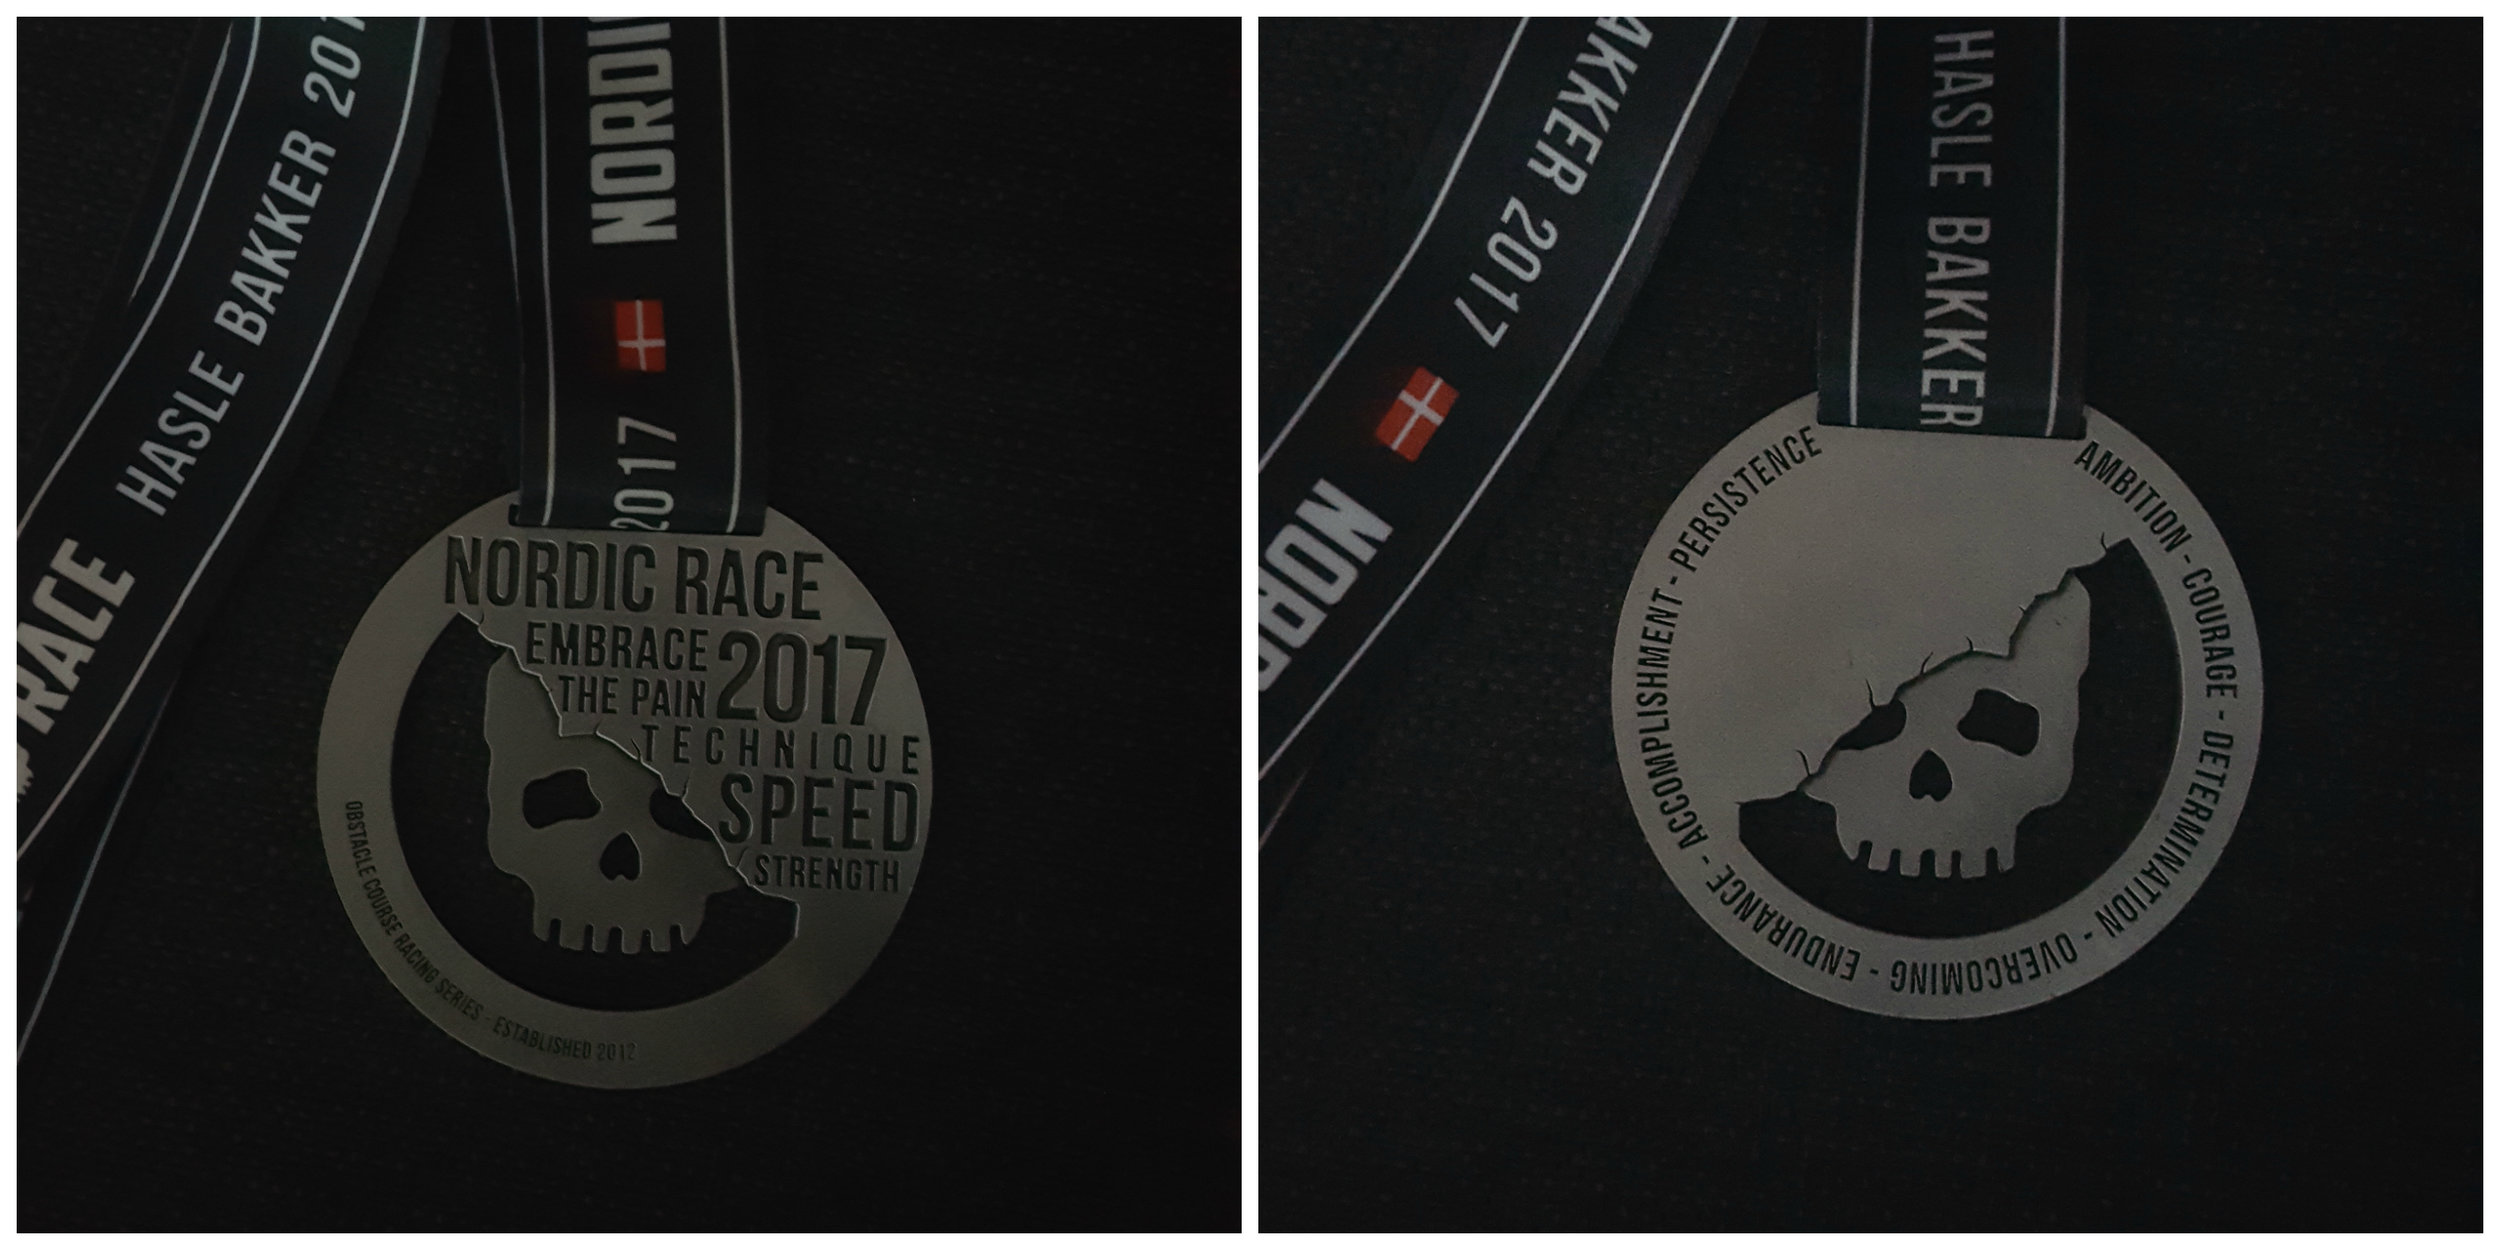 Medal for coming all the way through.